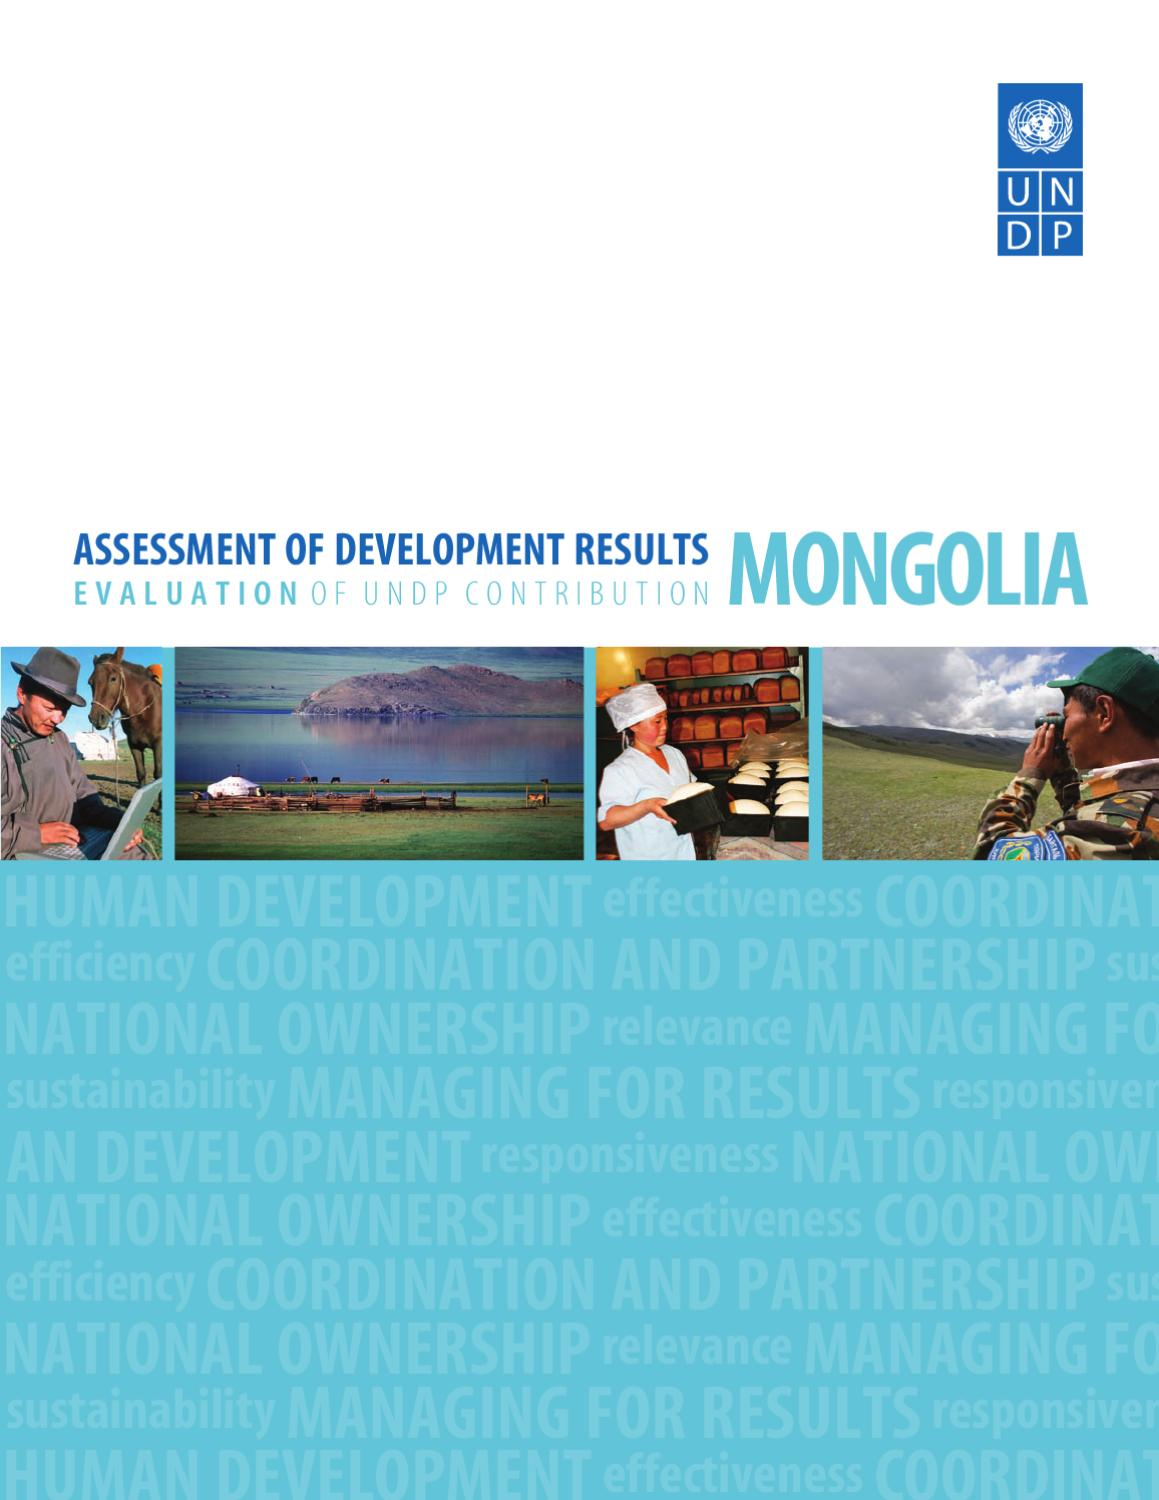 assessment of development results mongolia by undp